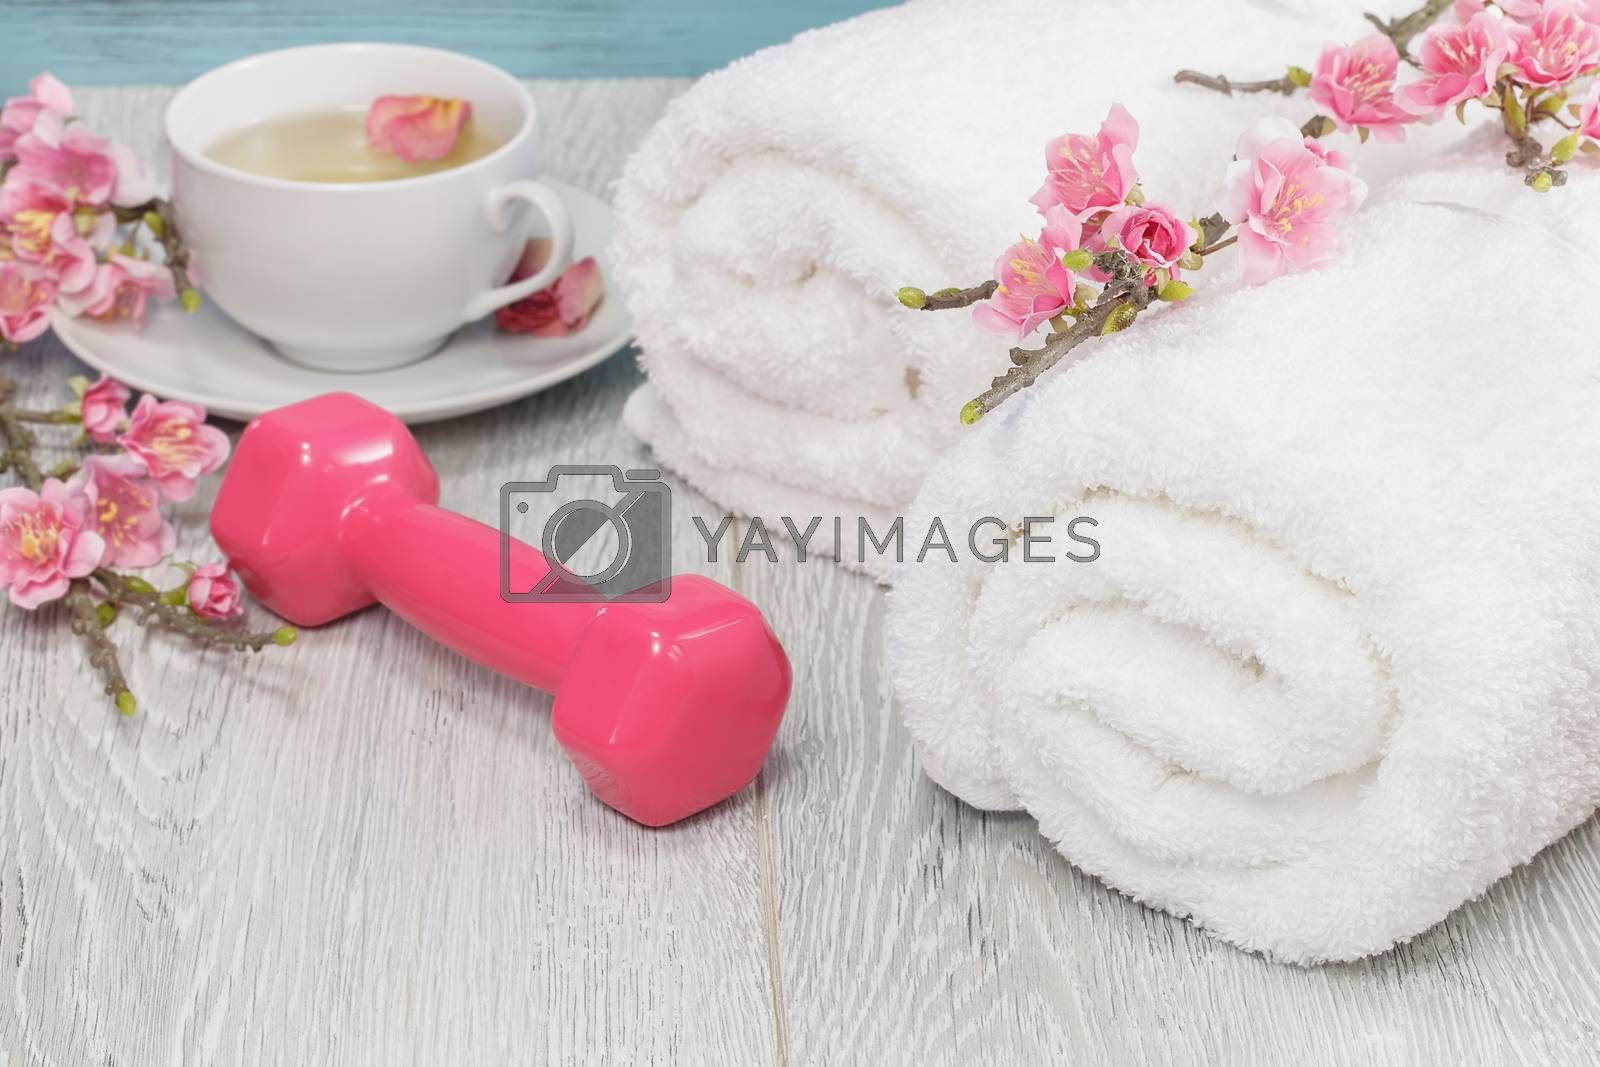 Healthy living concept- hand weight, towels and tea. by Slast20